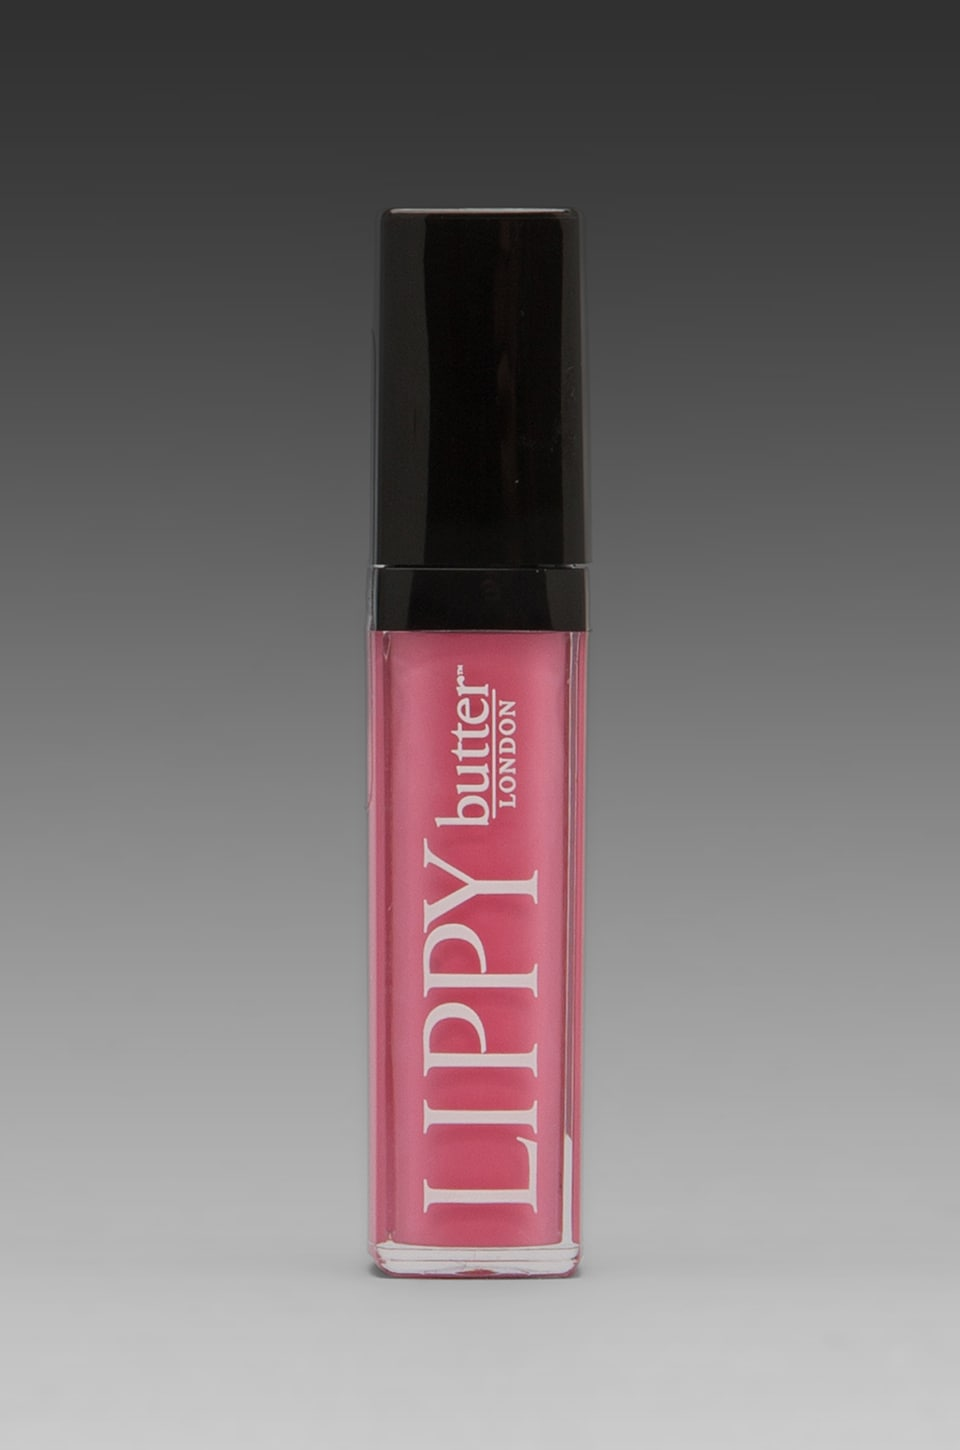 butter LONDON Lip Gloss in Alcopop